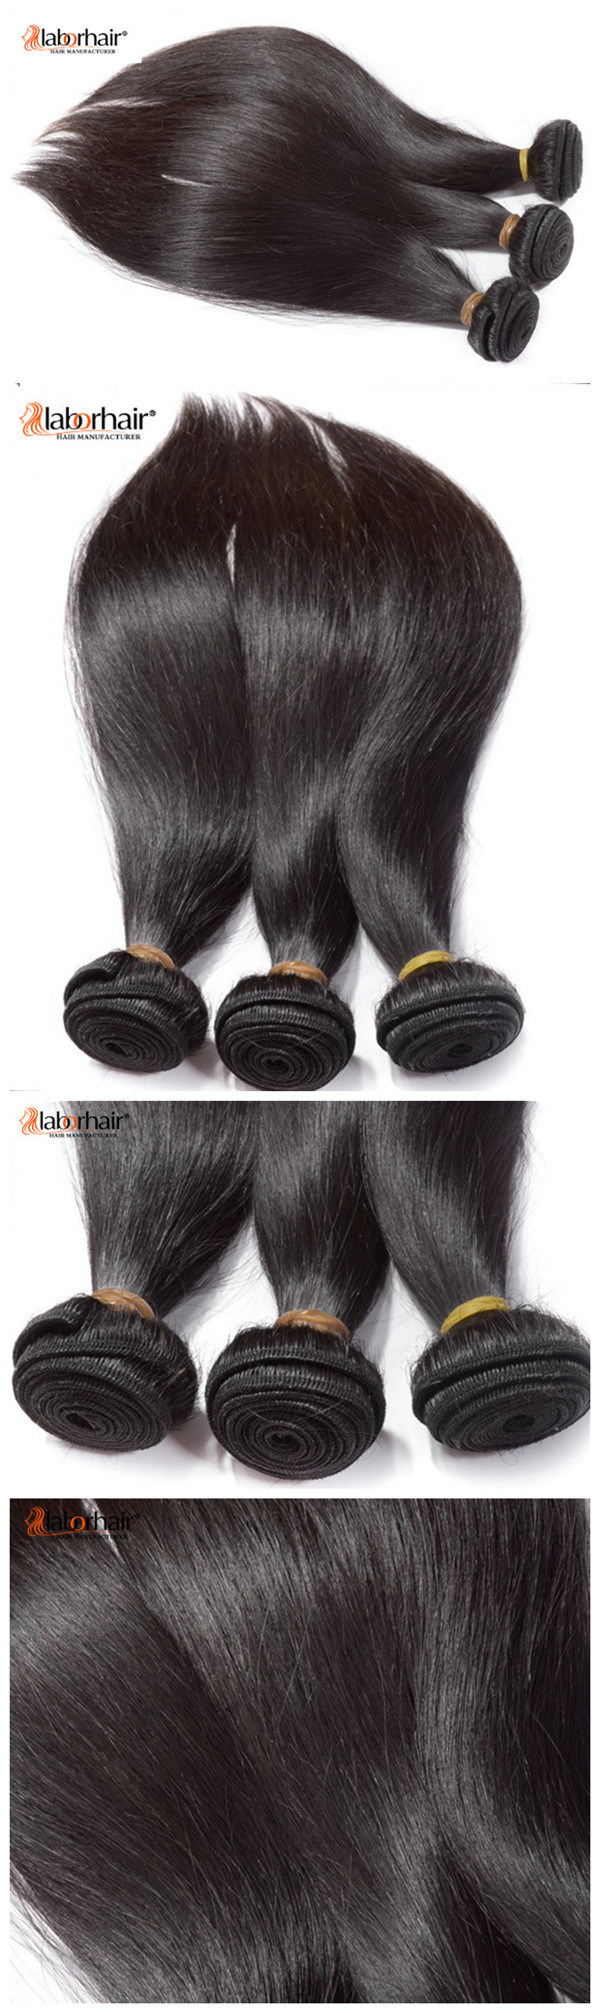 9A Natural Hair Weave 100% Brazilian Virgin Remy Human Hair Extension 2018 New Arrival Lbh 002